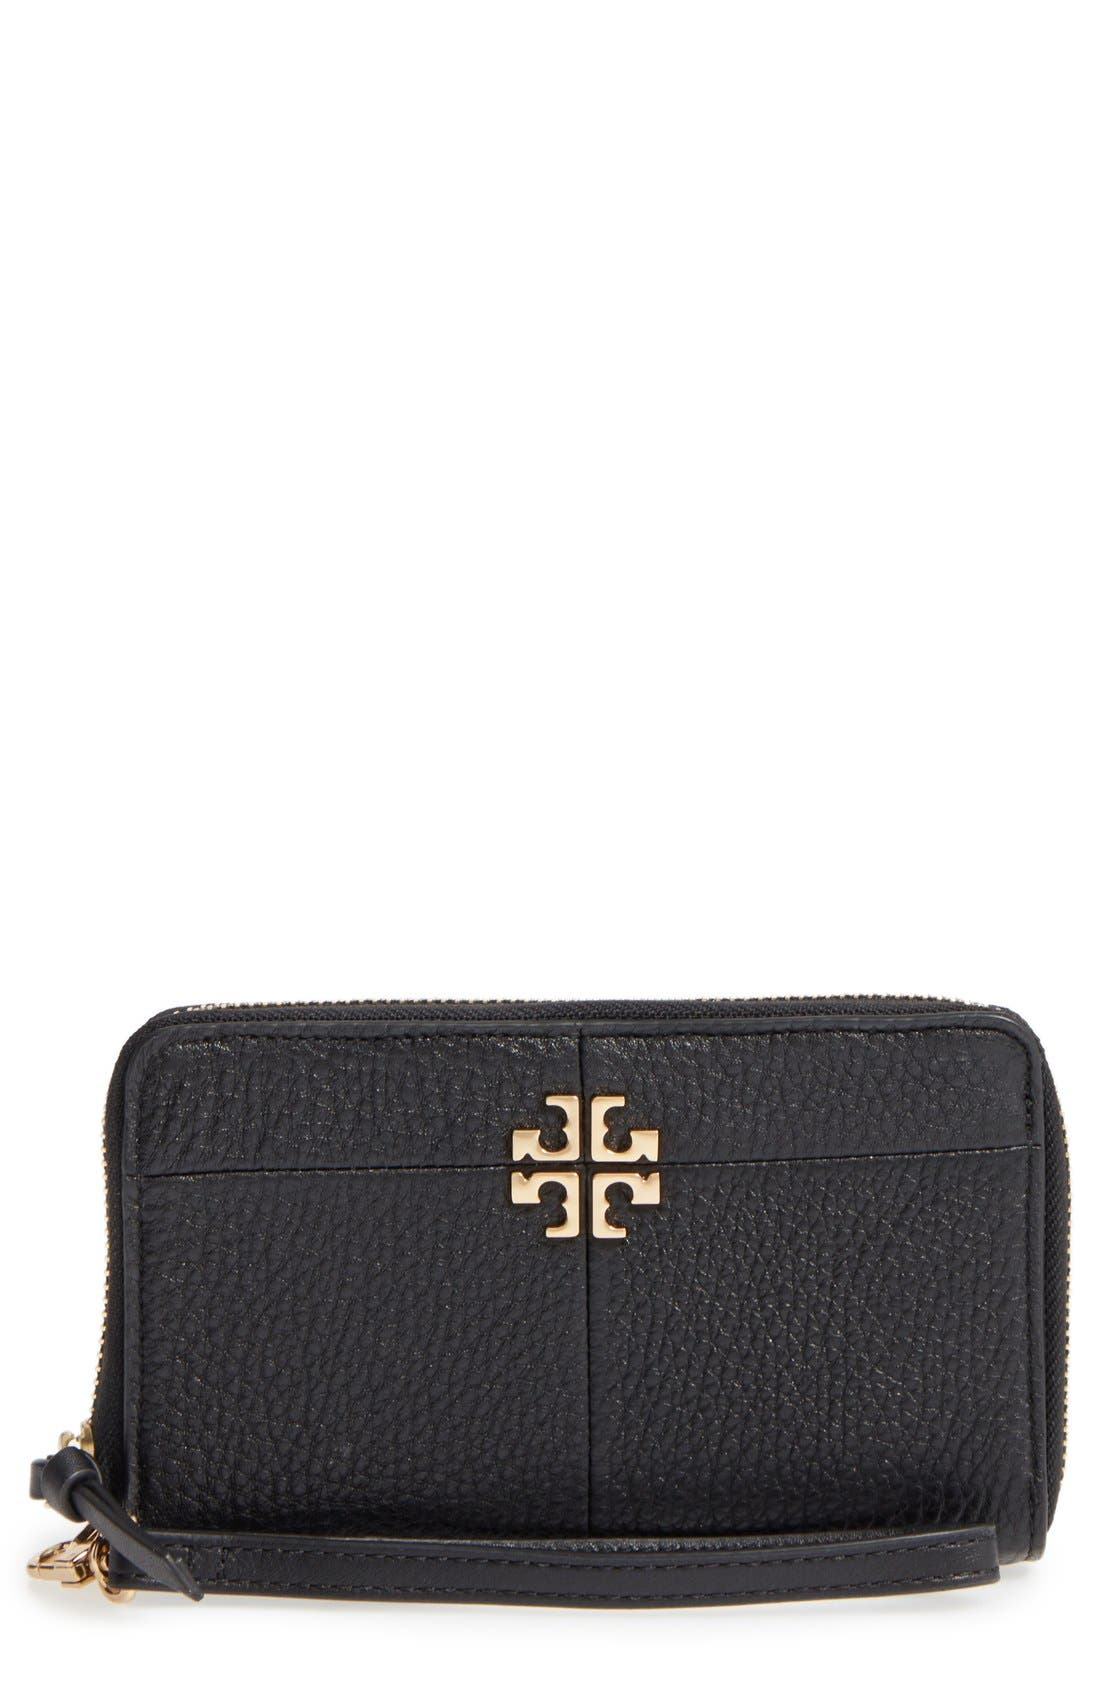 Alternate Image 1 Selected - Tory Burch Ivy Leather Smartphone Wristlet